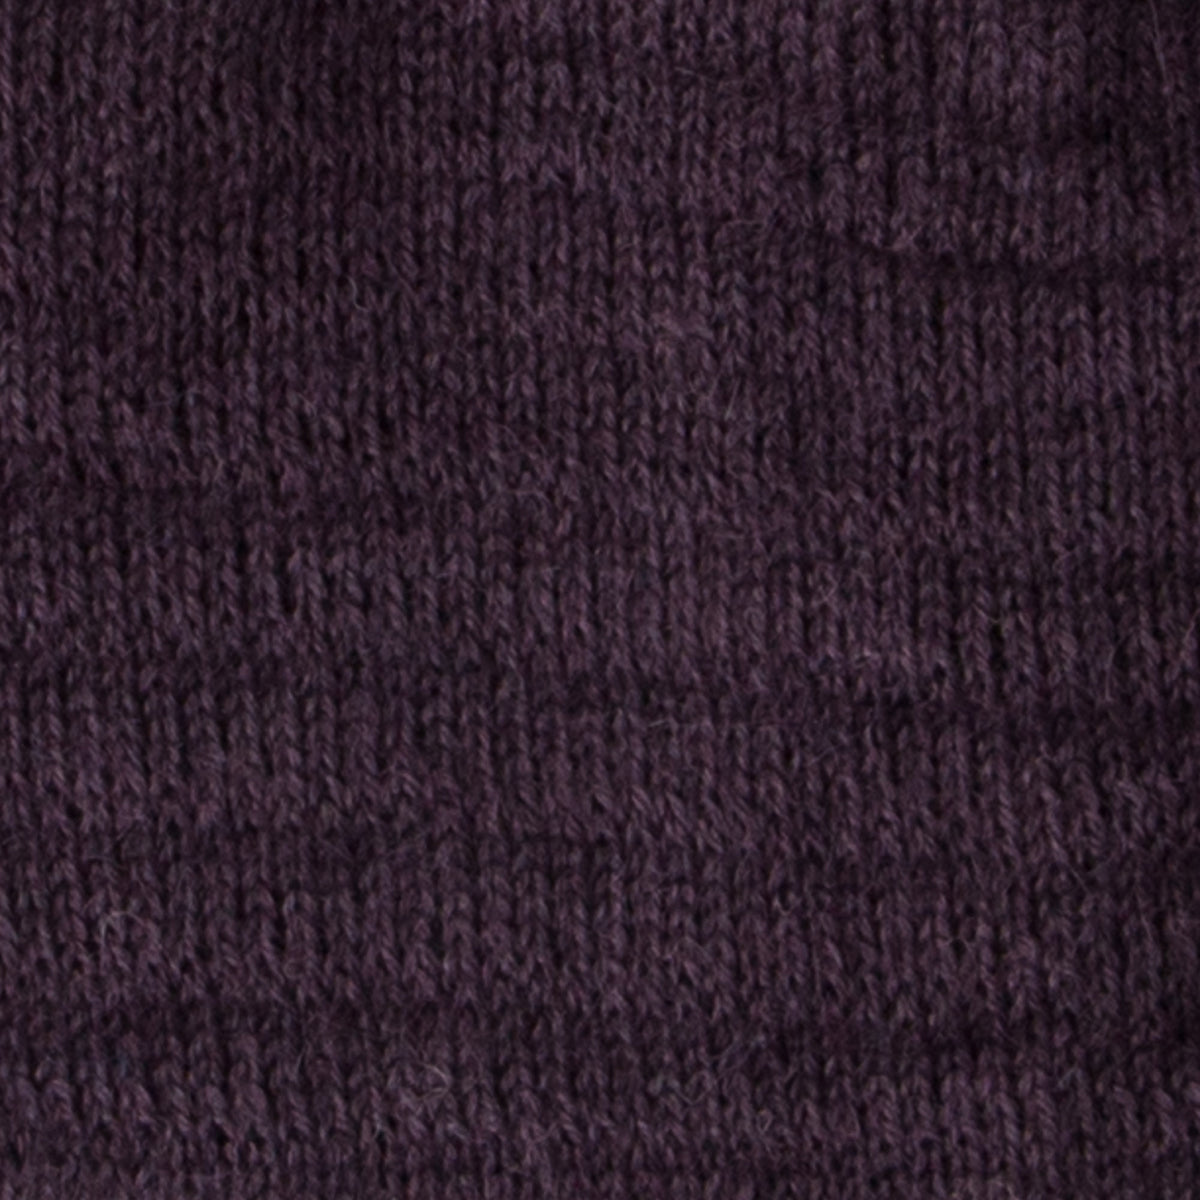 Texture Detail of Eggplant Slouchy Beanie in 100% Baby Alpaca Fiber - Sold by Chic & Basta